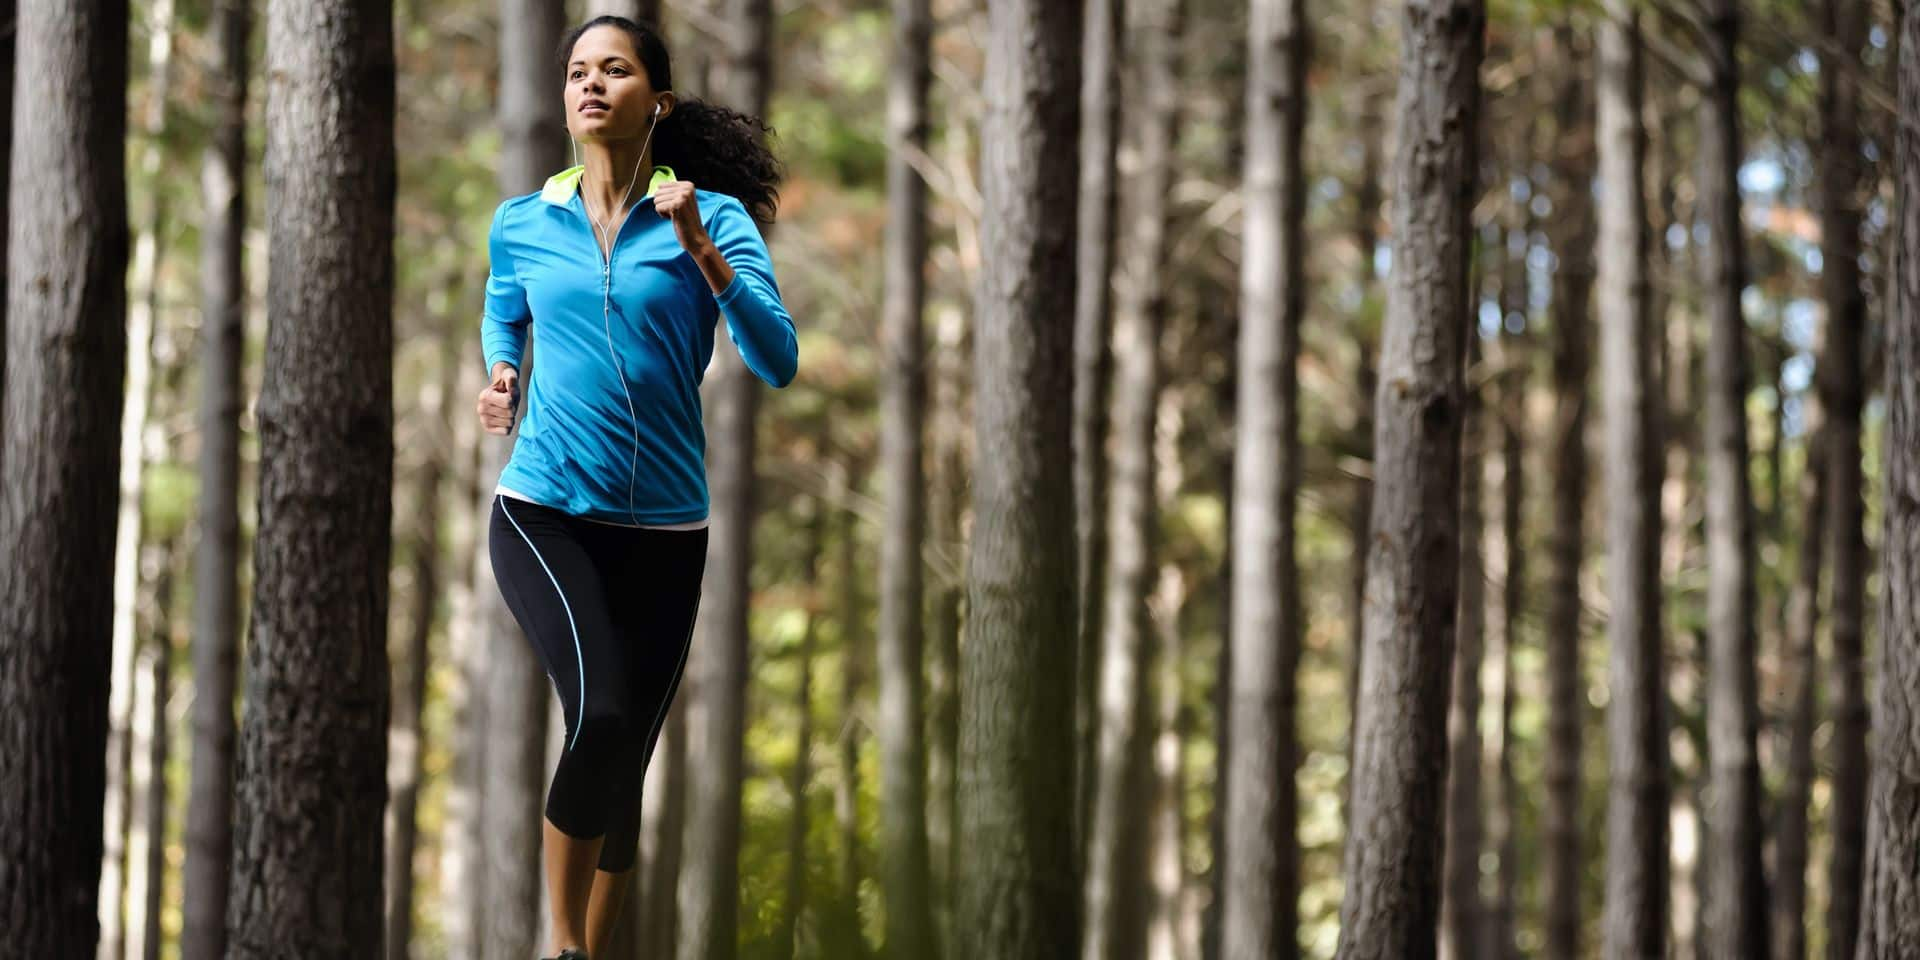 Woman,Running,In,Wooded,Forest,Area,,Training,And,Exercising,For